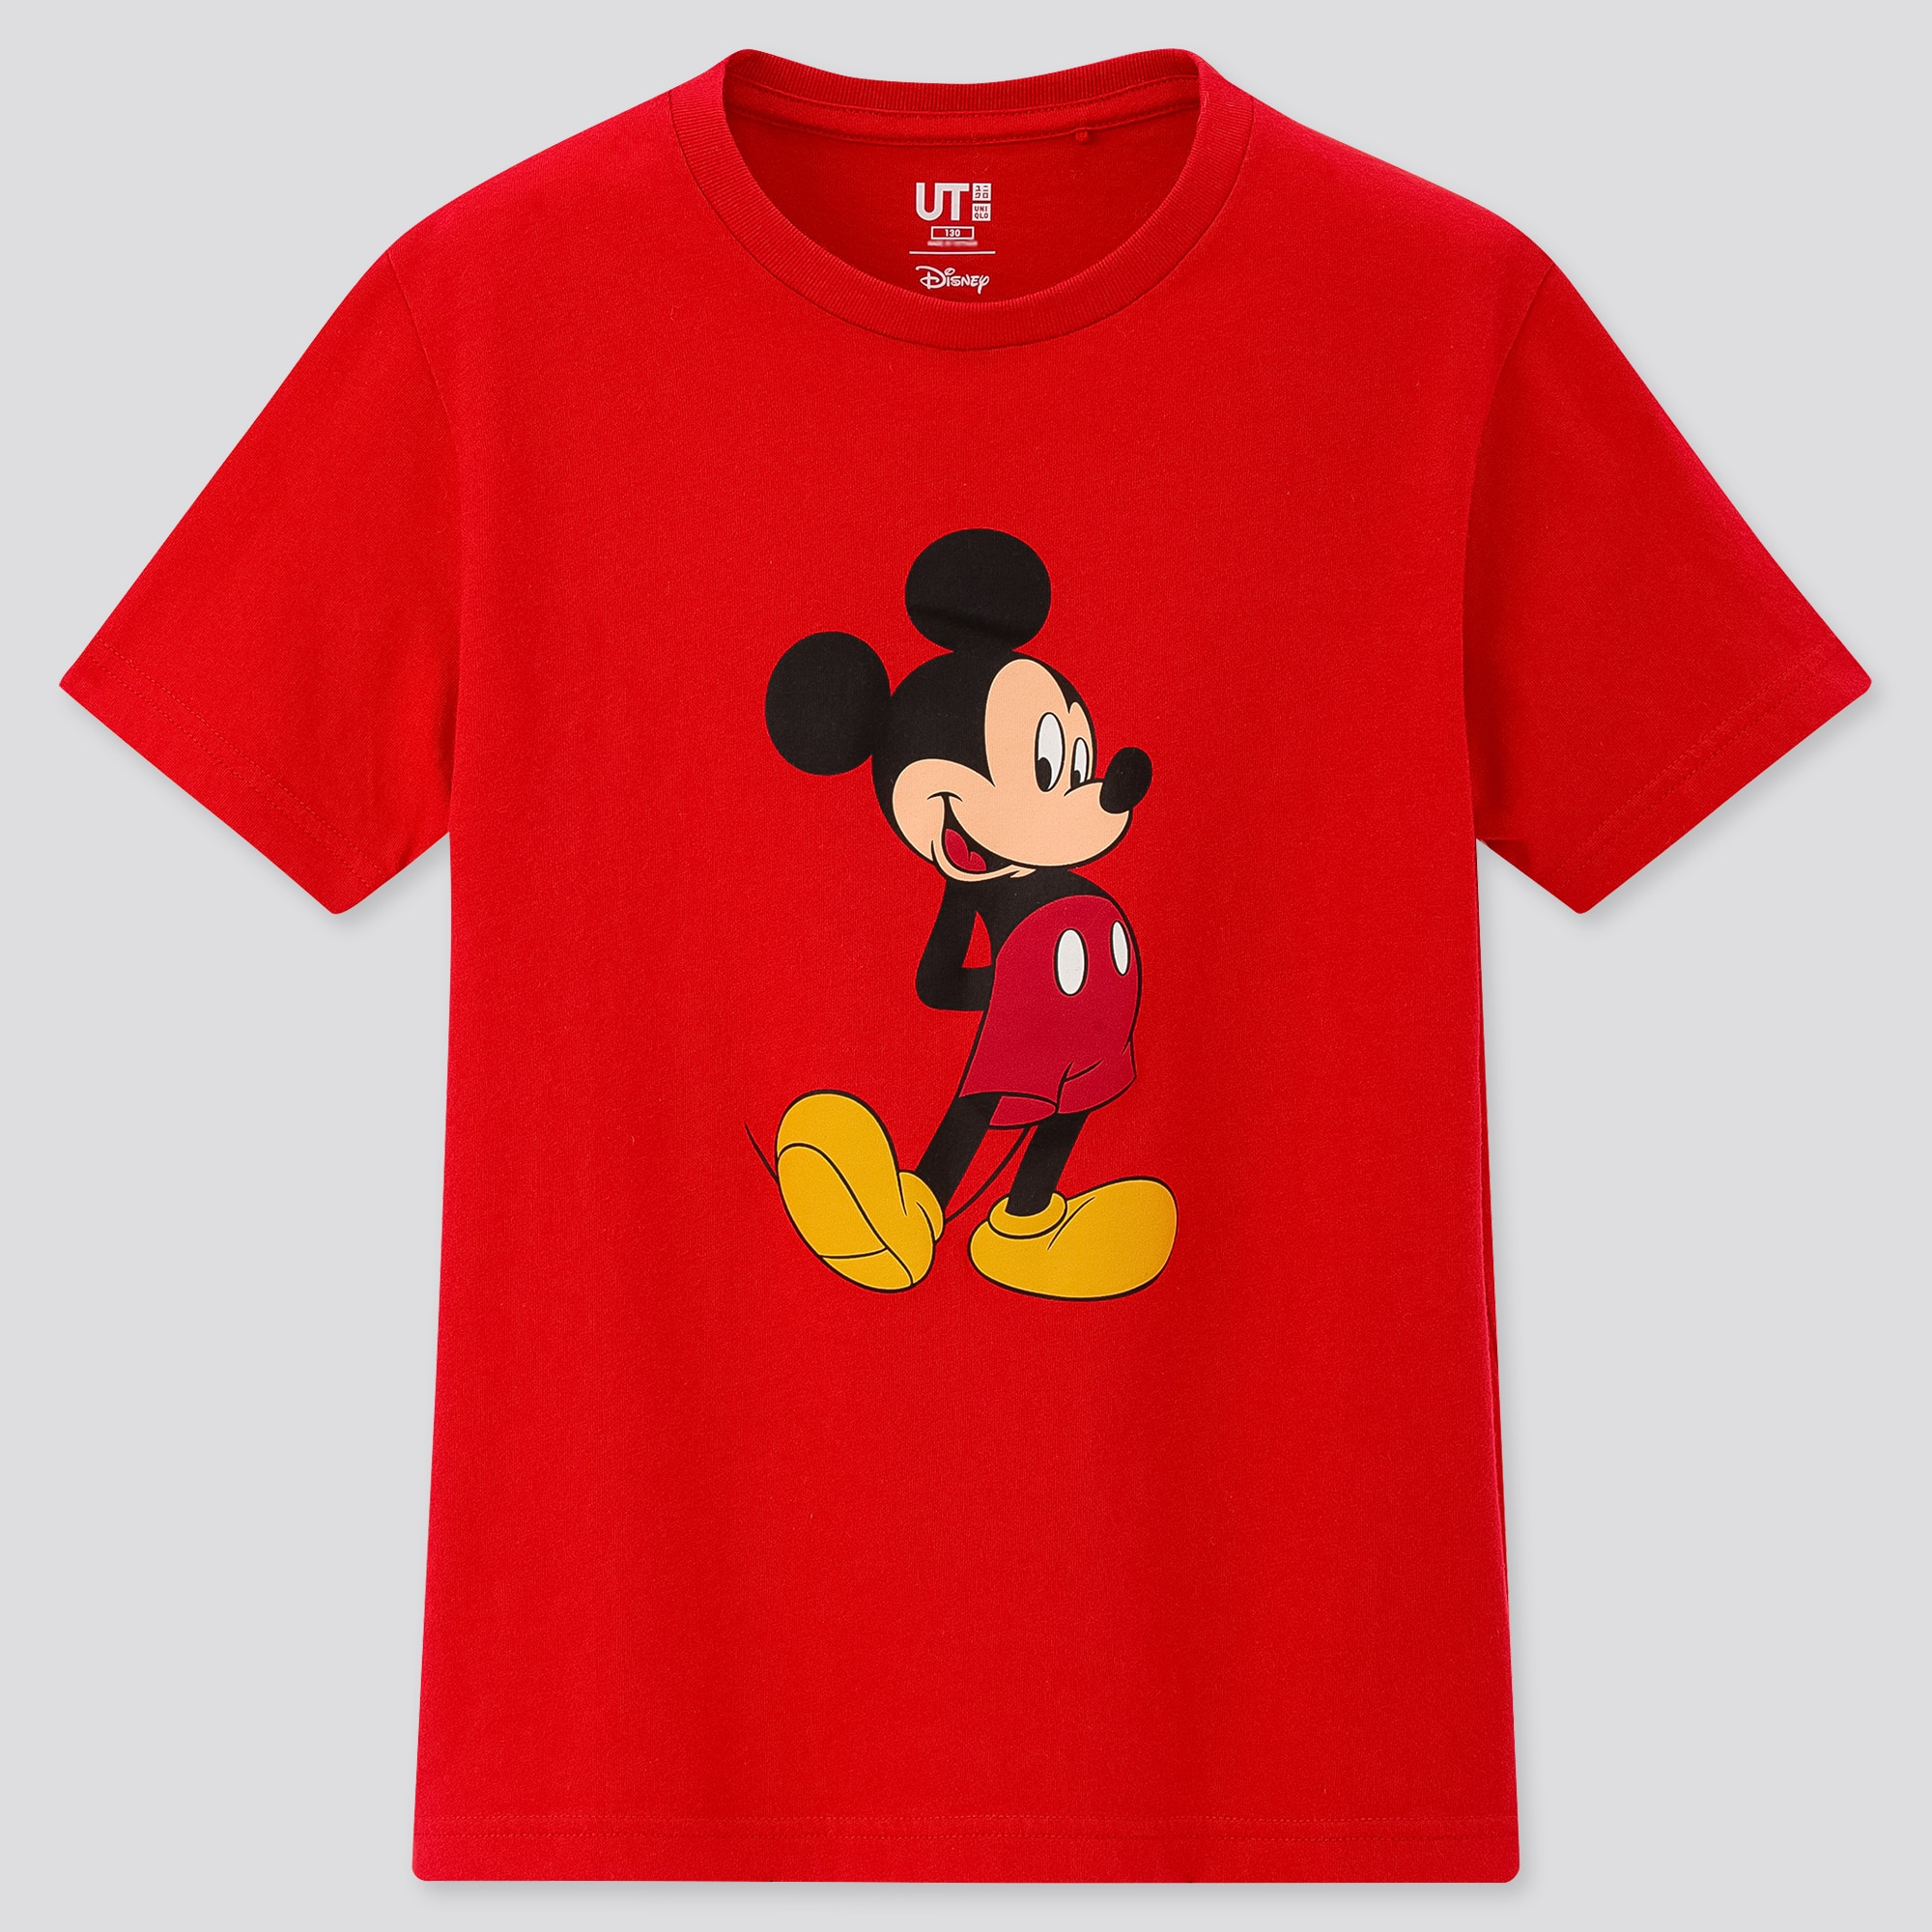 KIDS MAGIC FOR ALL ICONS UT (SHORT-SLEEVE GRAPHIC T-SHIRT)